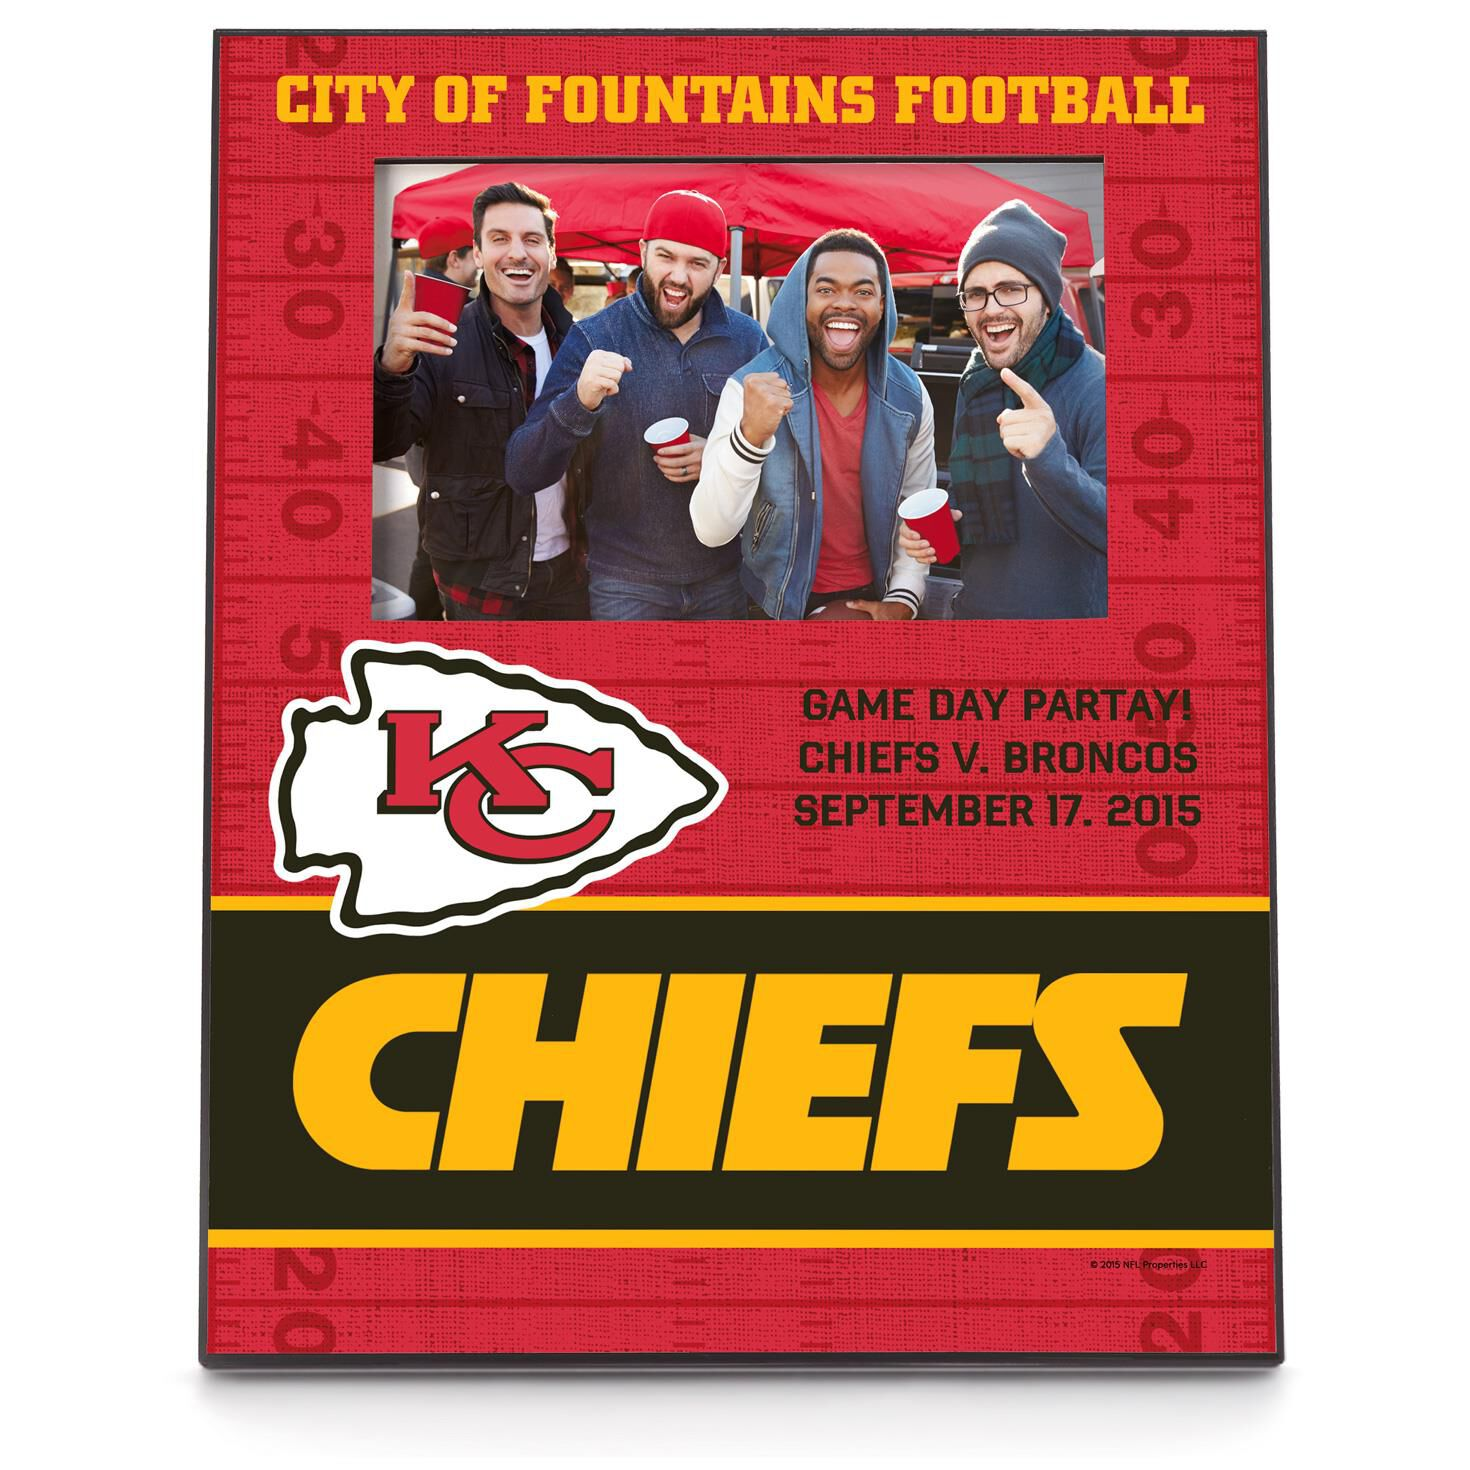 Kansas city chiefs personalized 4x6 picture frame personalized kansas city chiefs personalized 4x6 picture frame personalized home decor hallmark jeuxipadfo Image collections